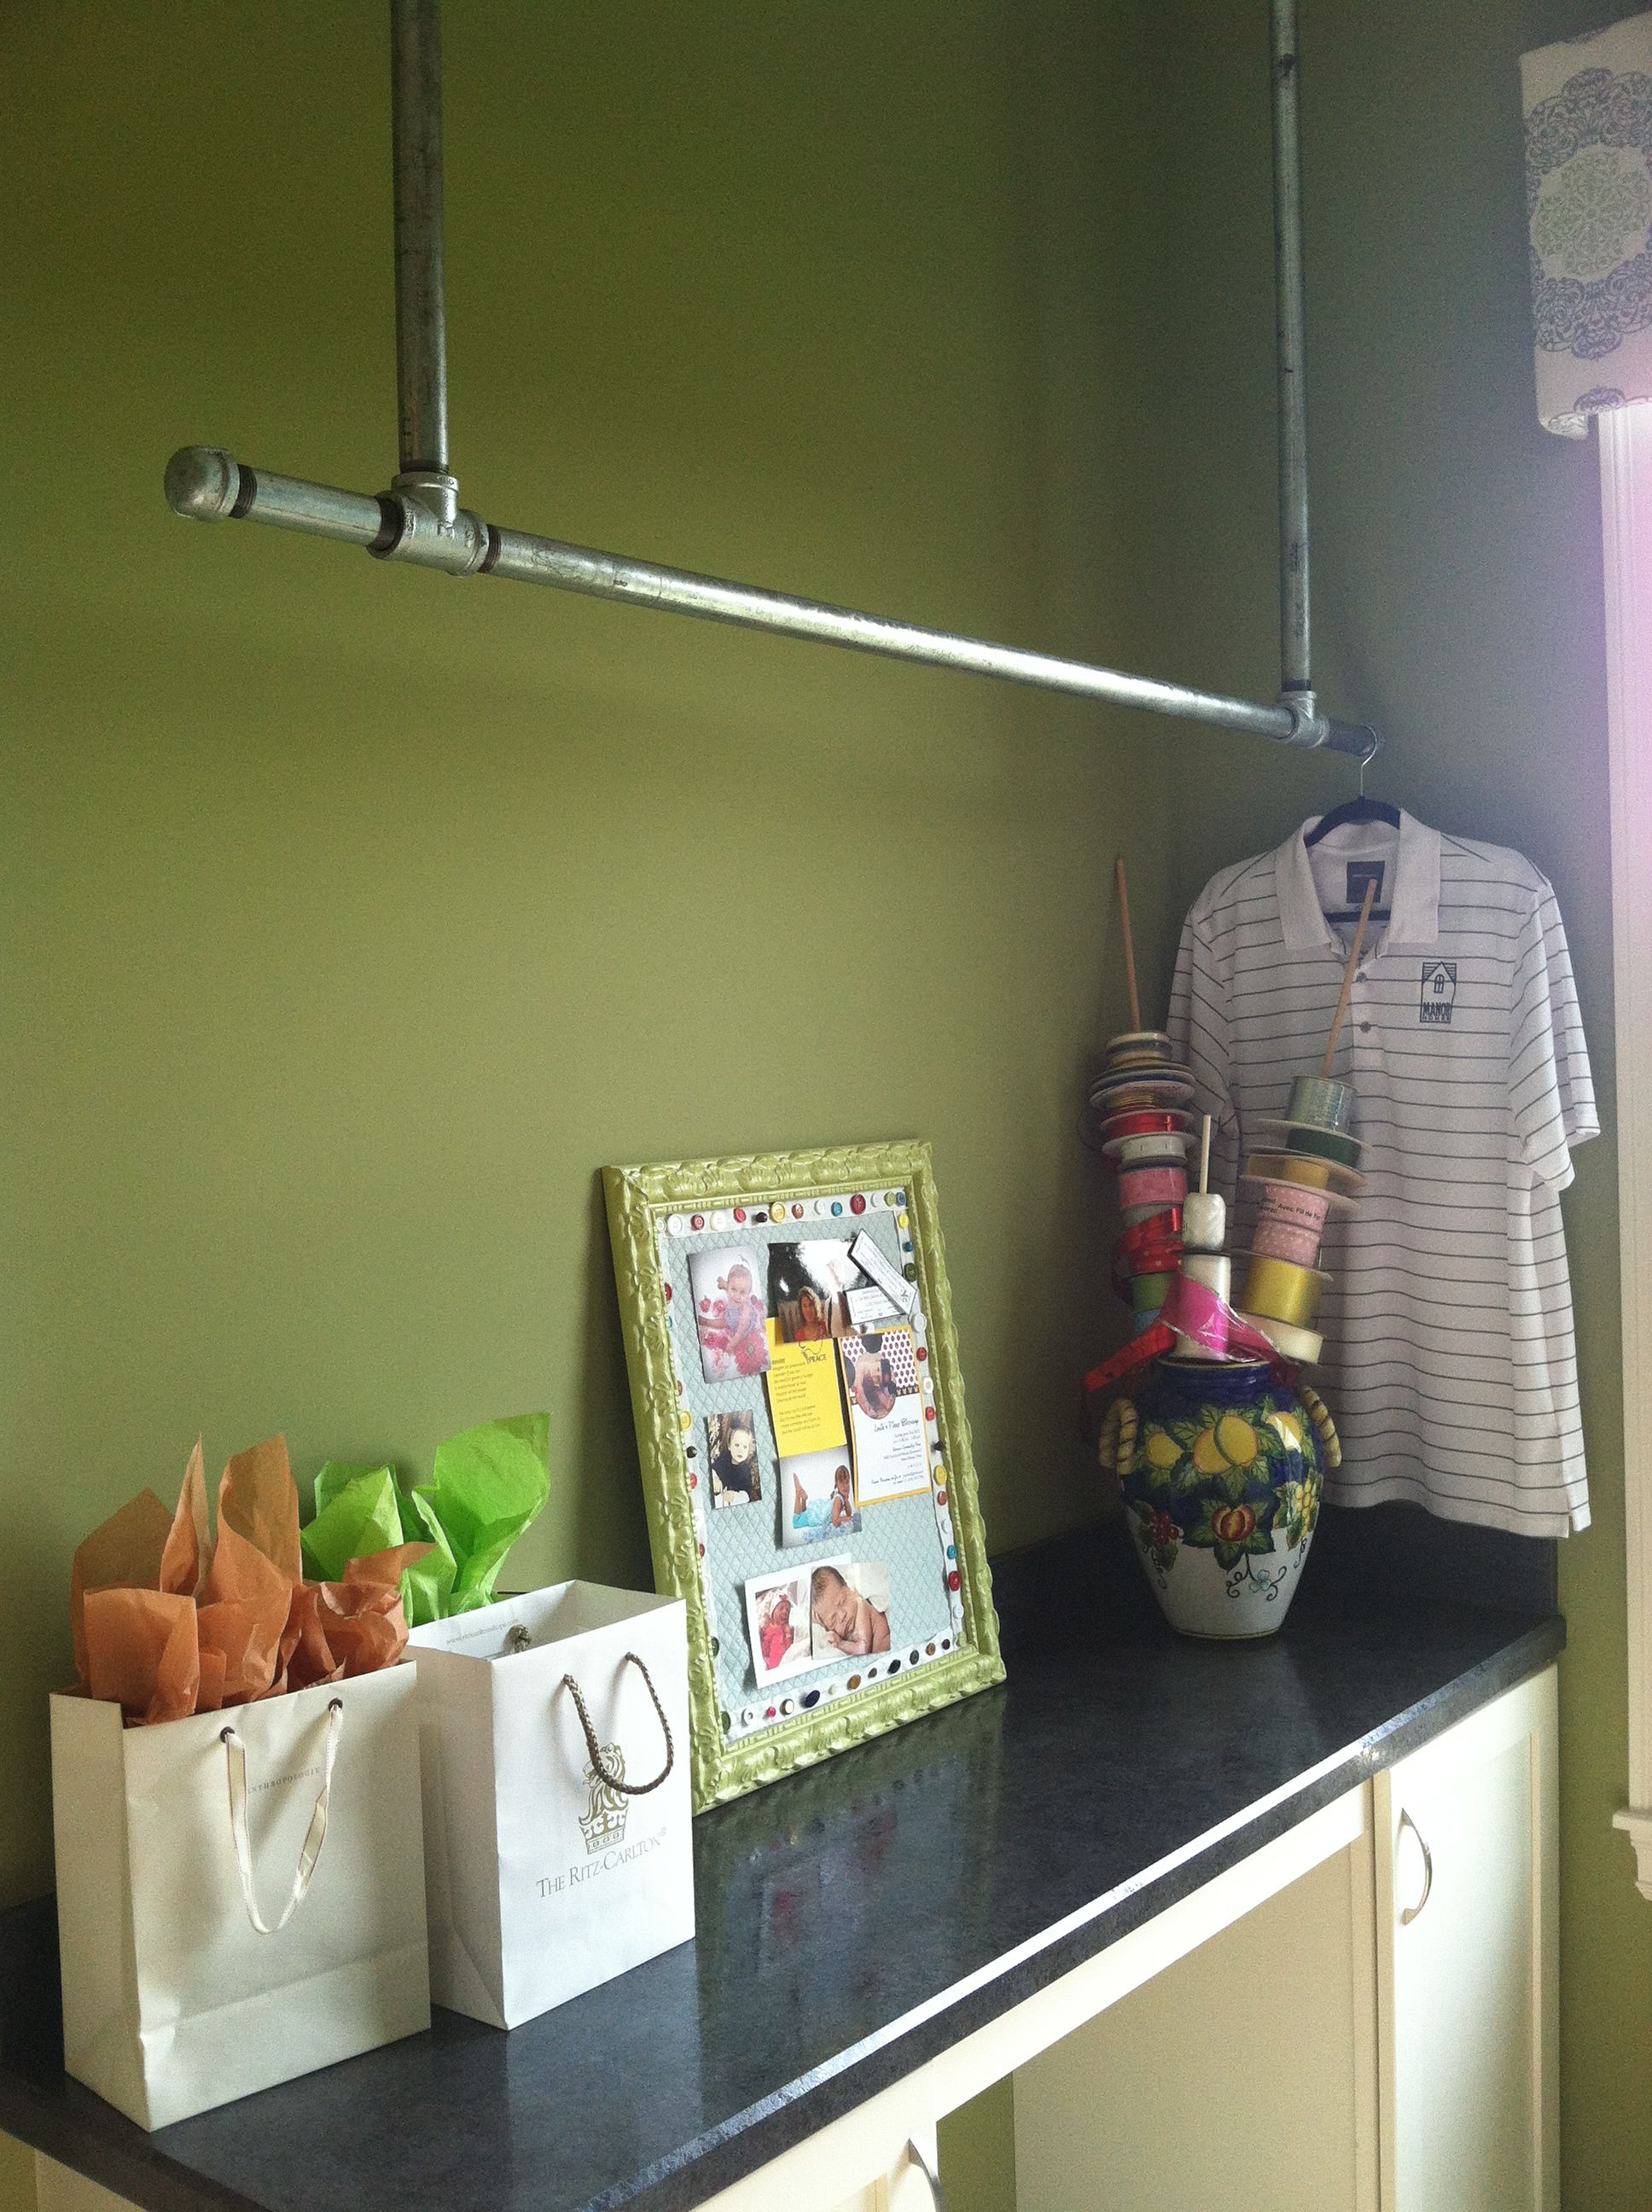 Industrial Bar For Hanging Clothes In Laundry Room